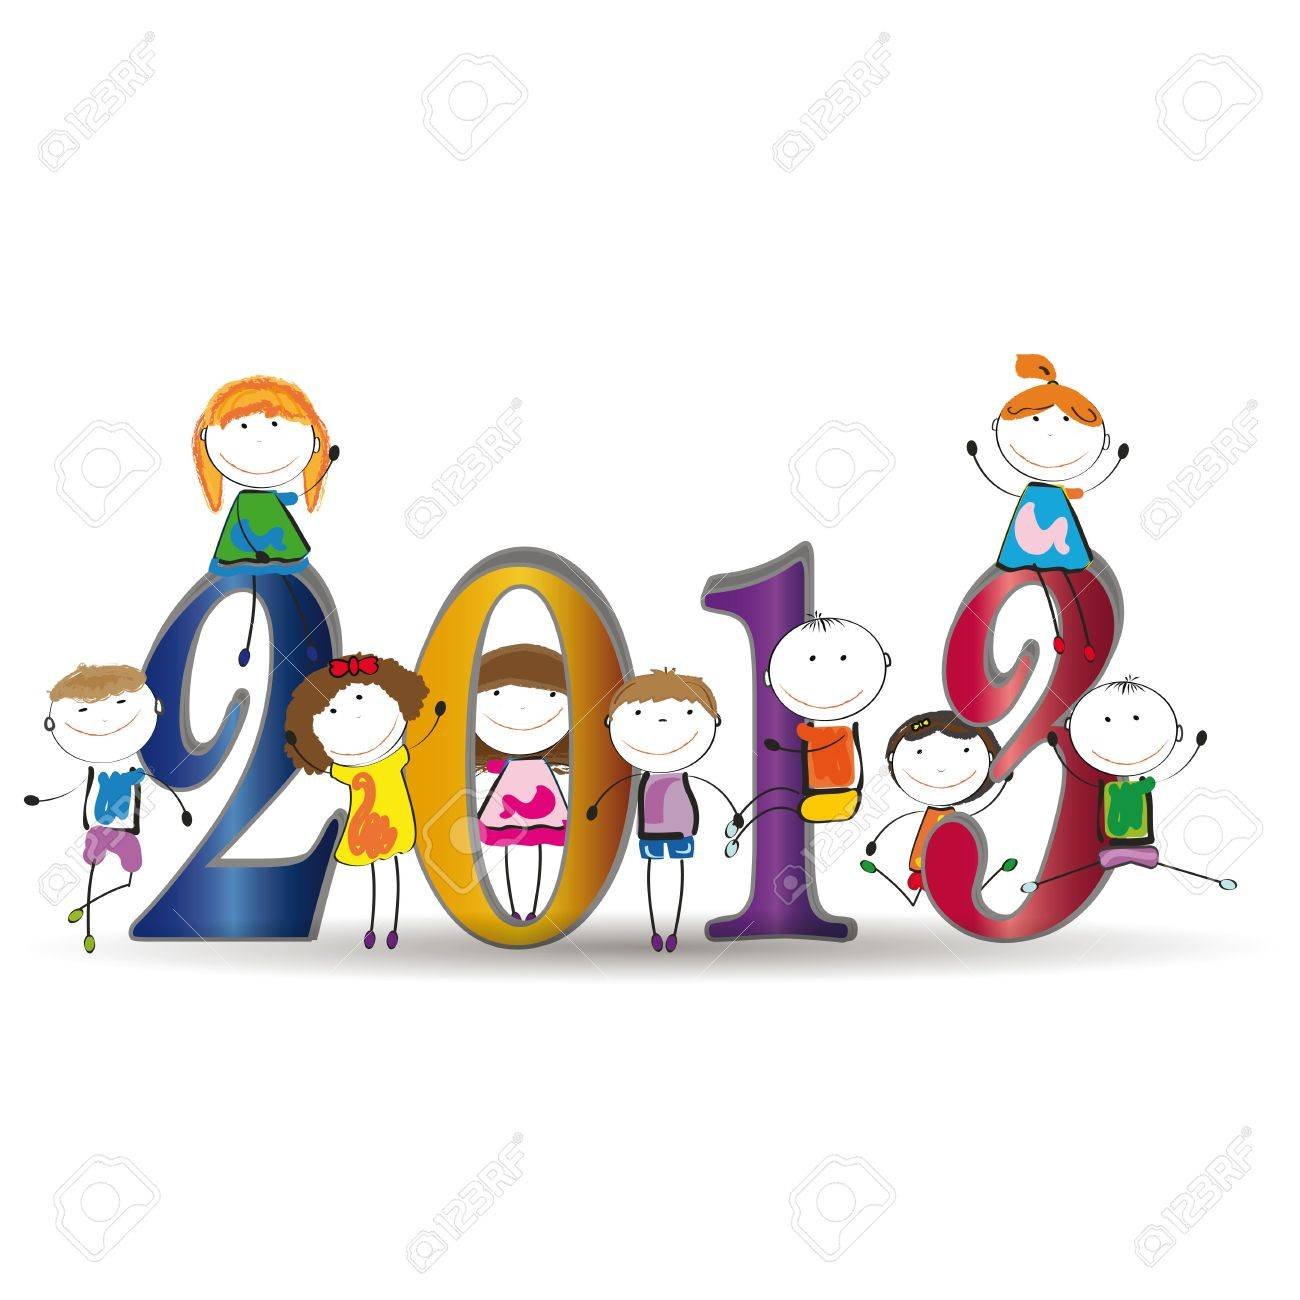 Cute card on New Year 2013 with happy kids Stock Vector - 14594121